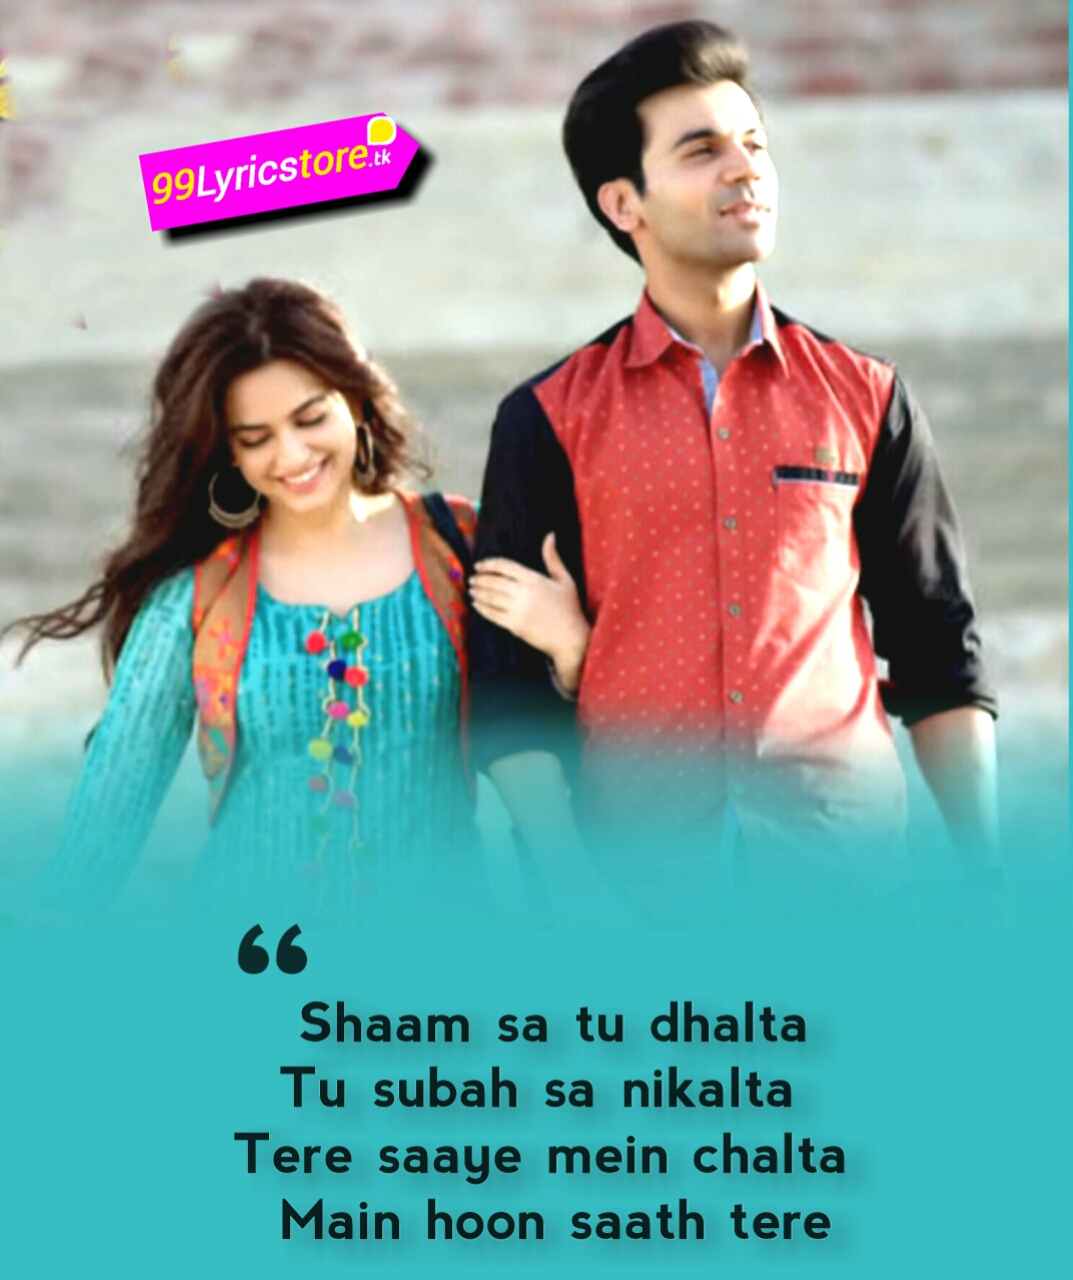 Rajkumar Rao Song Lyrics, Kriti kharbanda images, Arijit Song Lyrics, Hindi Song Lyrics, Bollywood Song Lyrics, Latest Hindi Song Lyrics